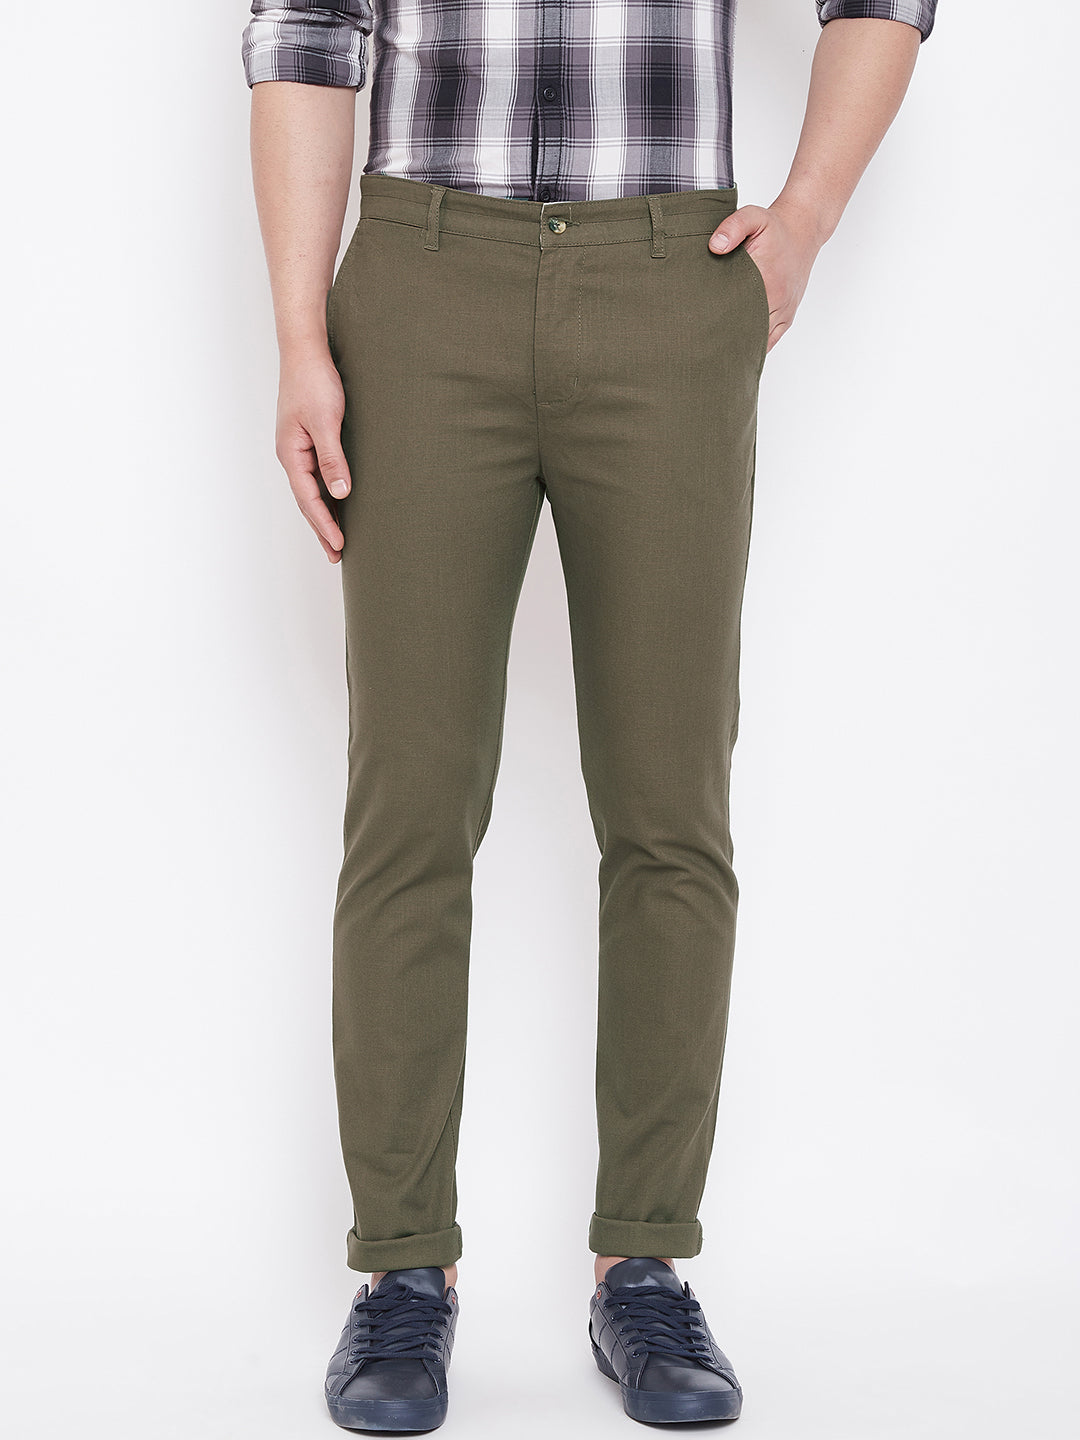 JUMP USA Men Olive Casual Slim Fit Trousers